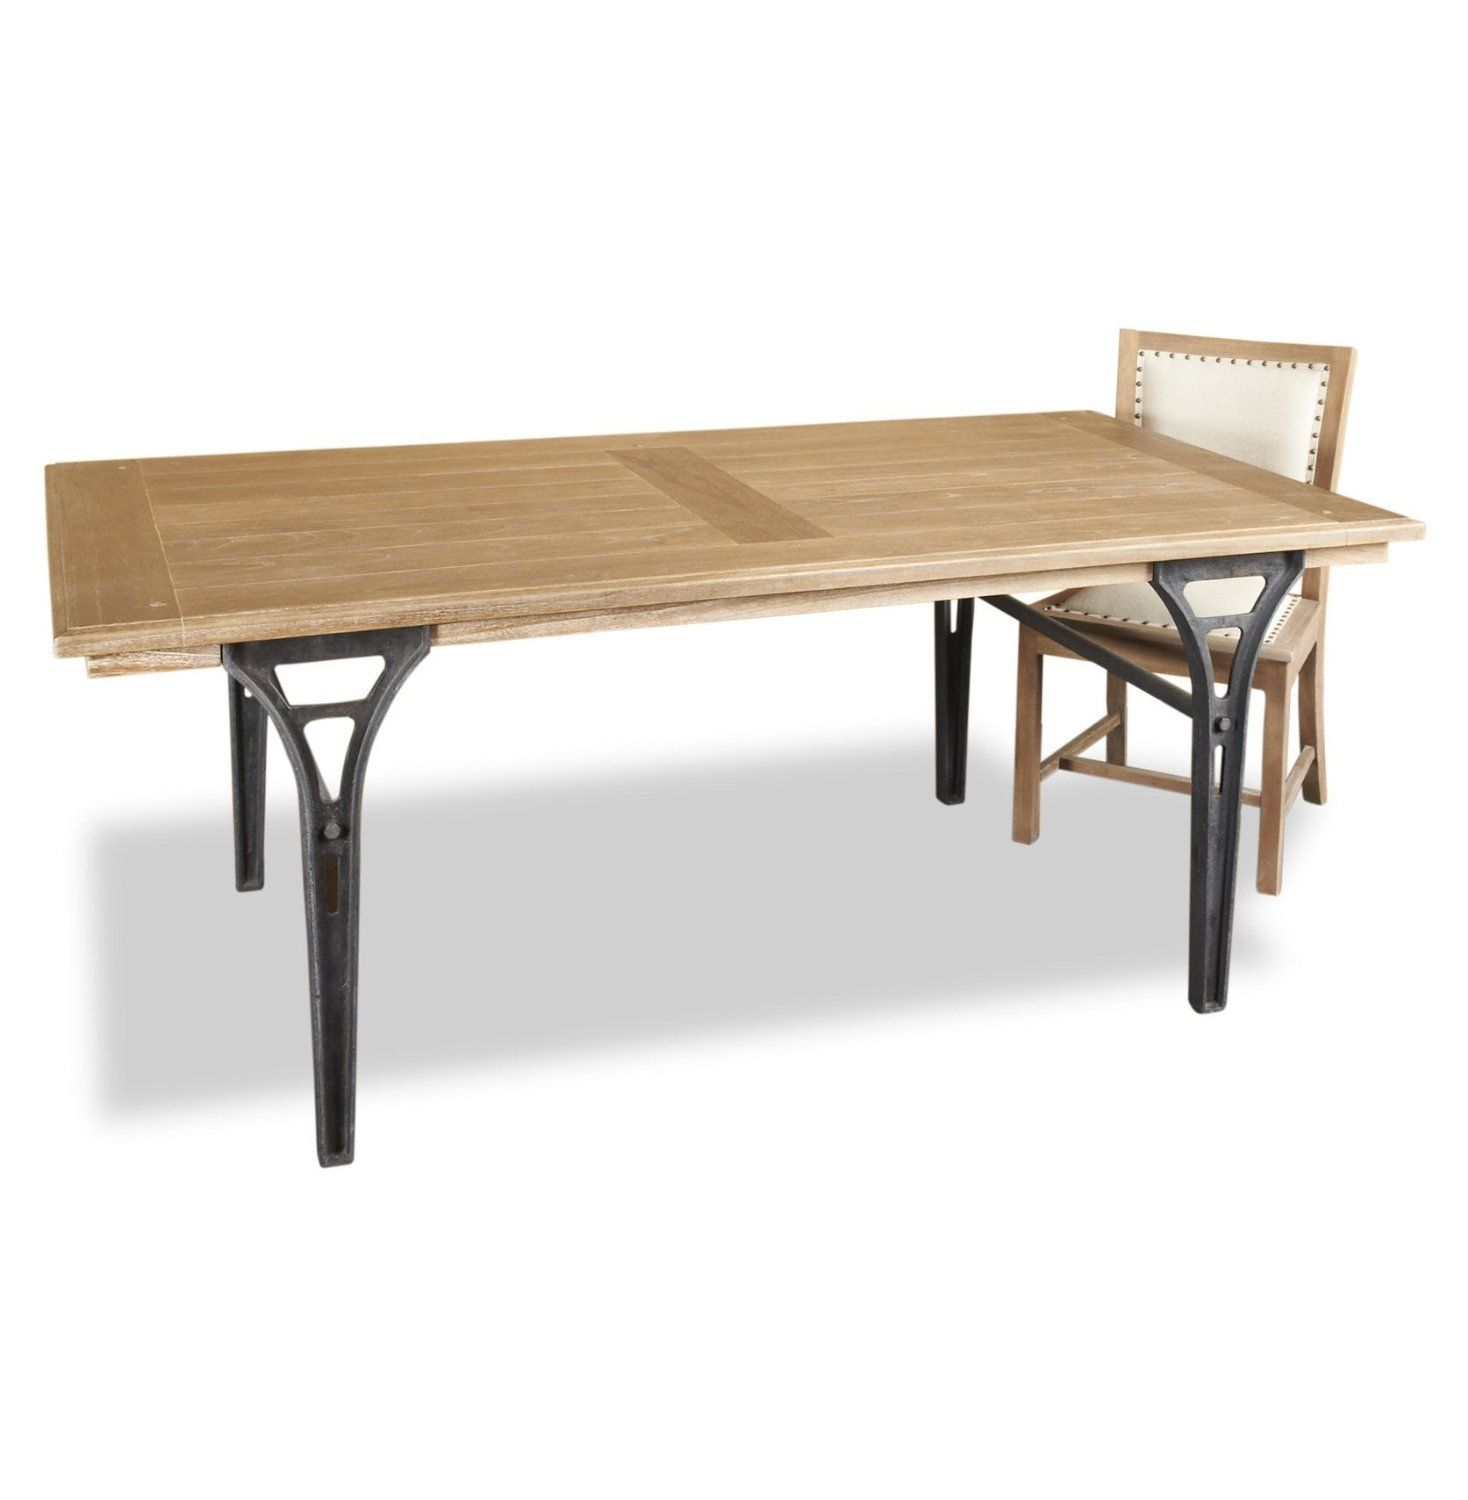 Marvelous Fashionable Expandable Dining Table Black Metal Legs Plus Brown Teak Wood  On Tops With Cool Natural